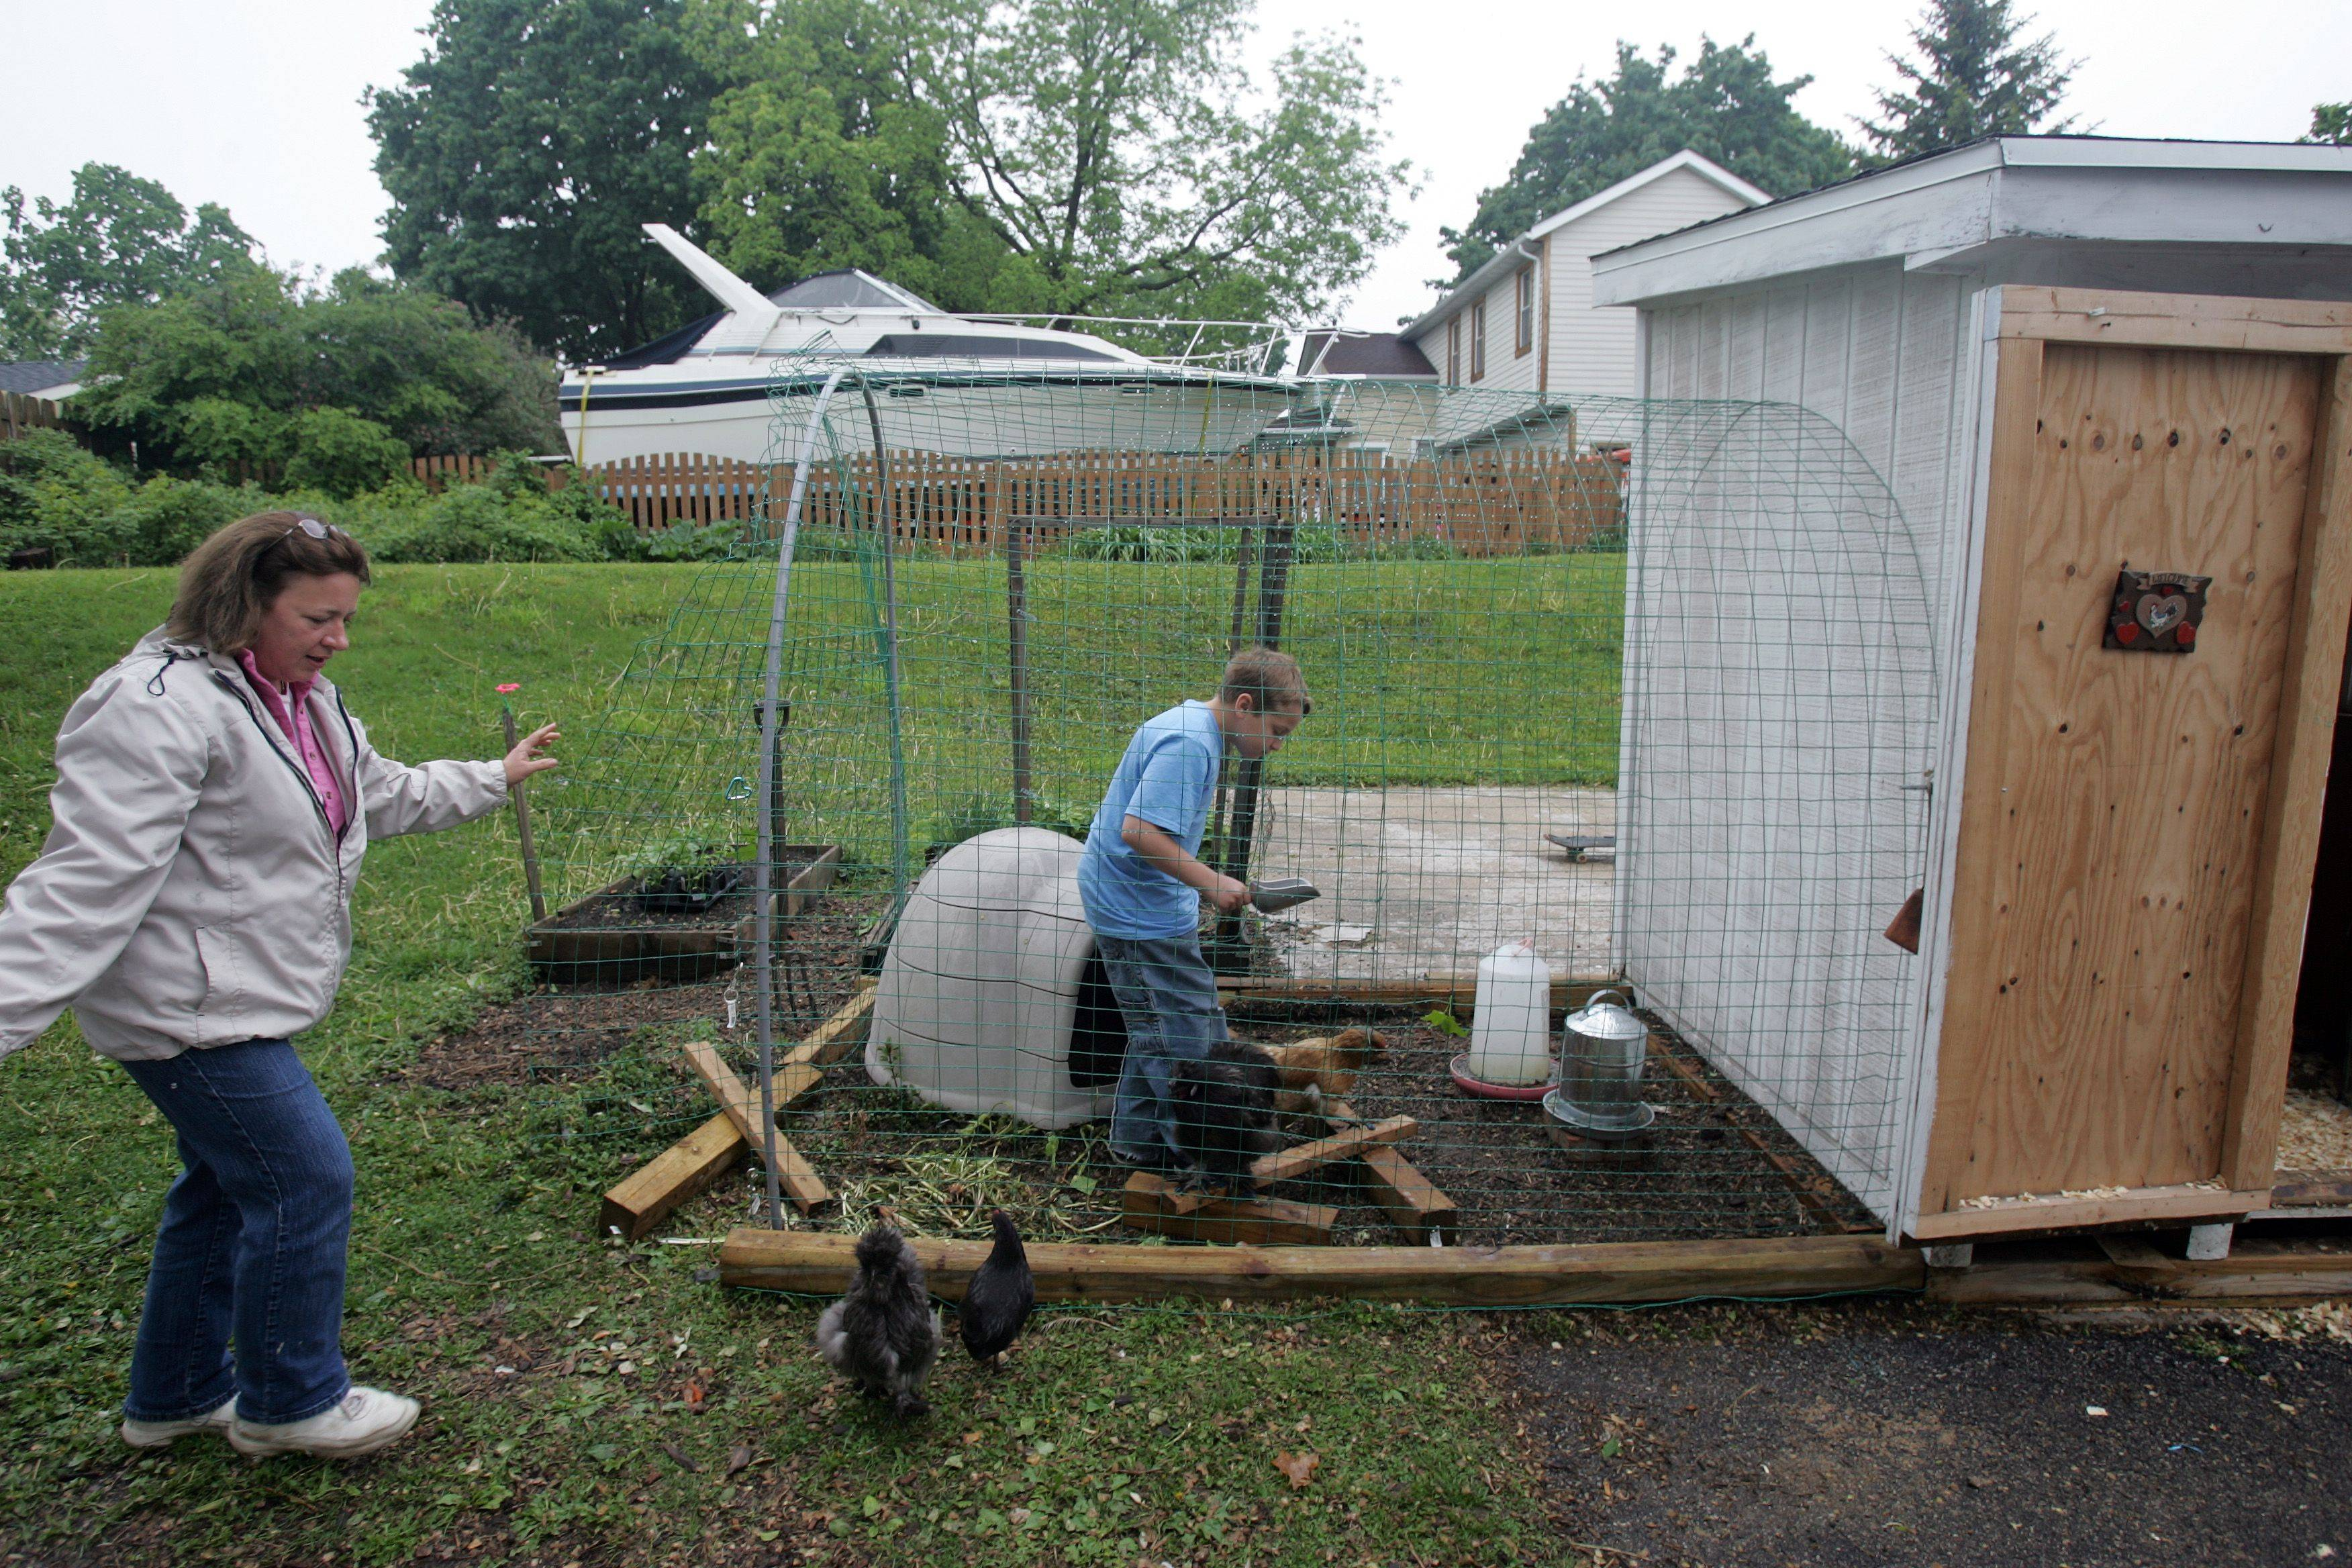 Jeanne Lyon of St. Charles and her ten-year-old son feed the family's chickens.